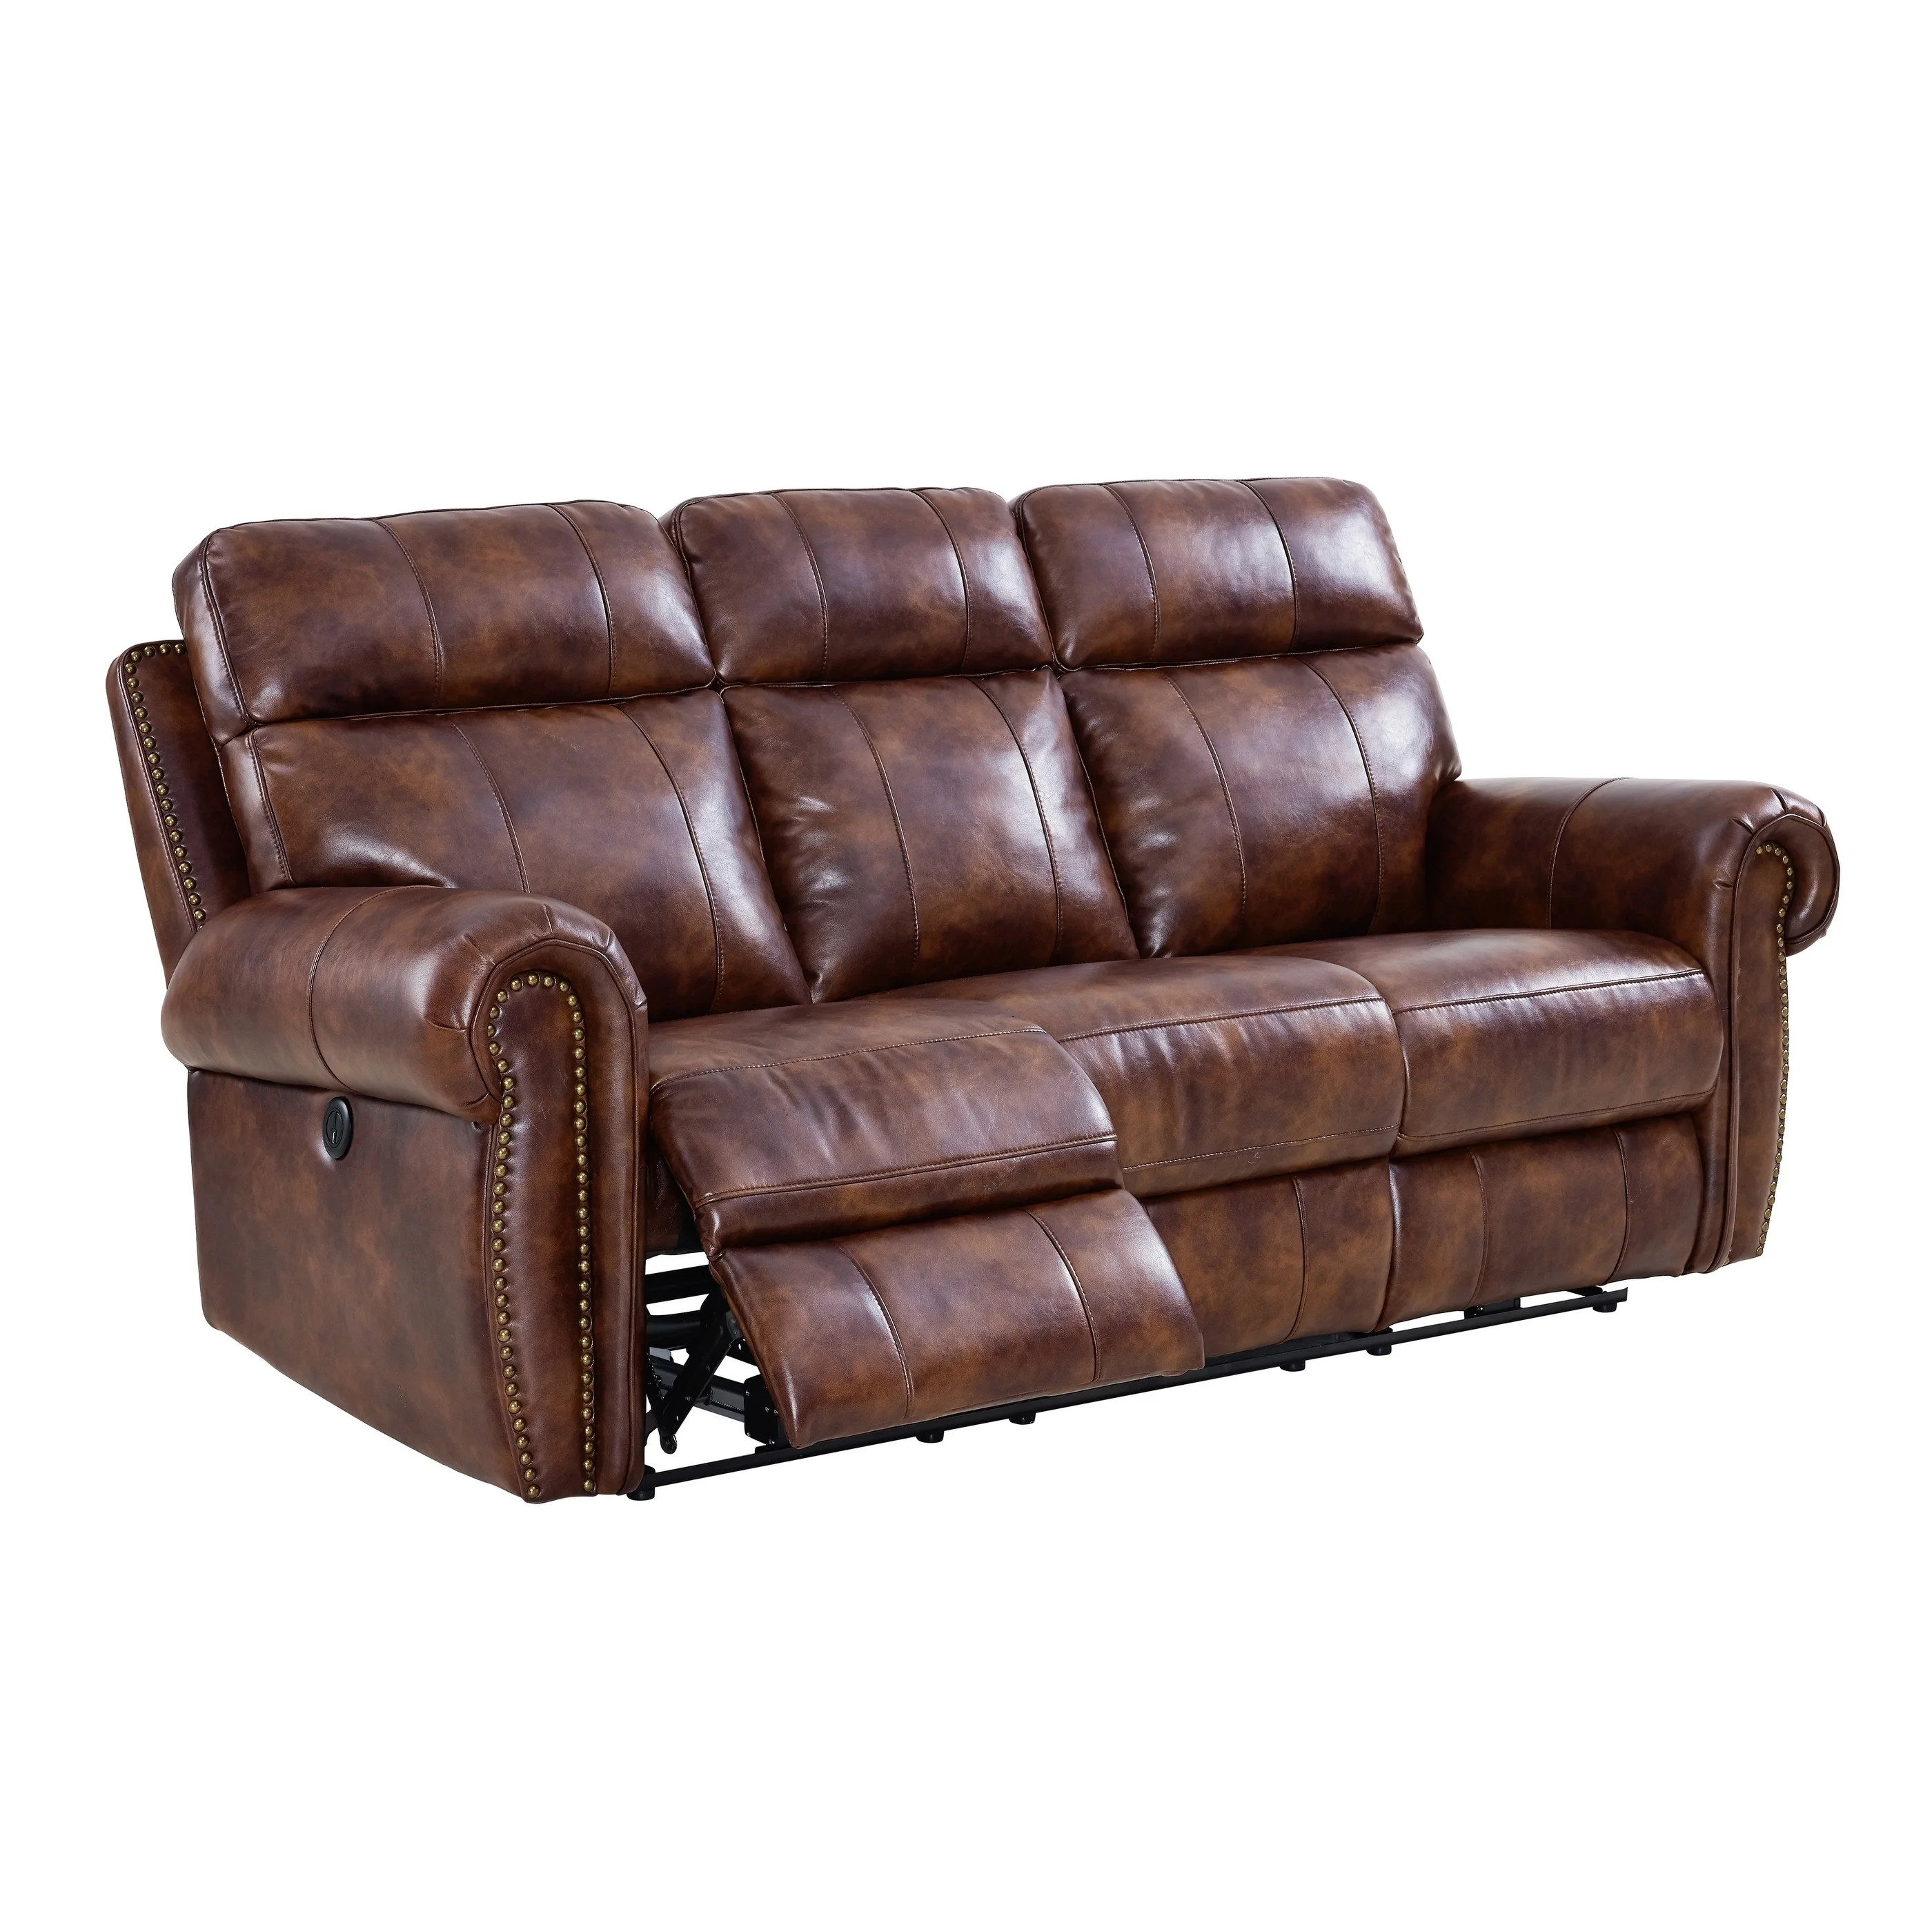 Dual Reclining Leather Sofa Furniture Amazing Power Reclining Sofa